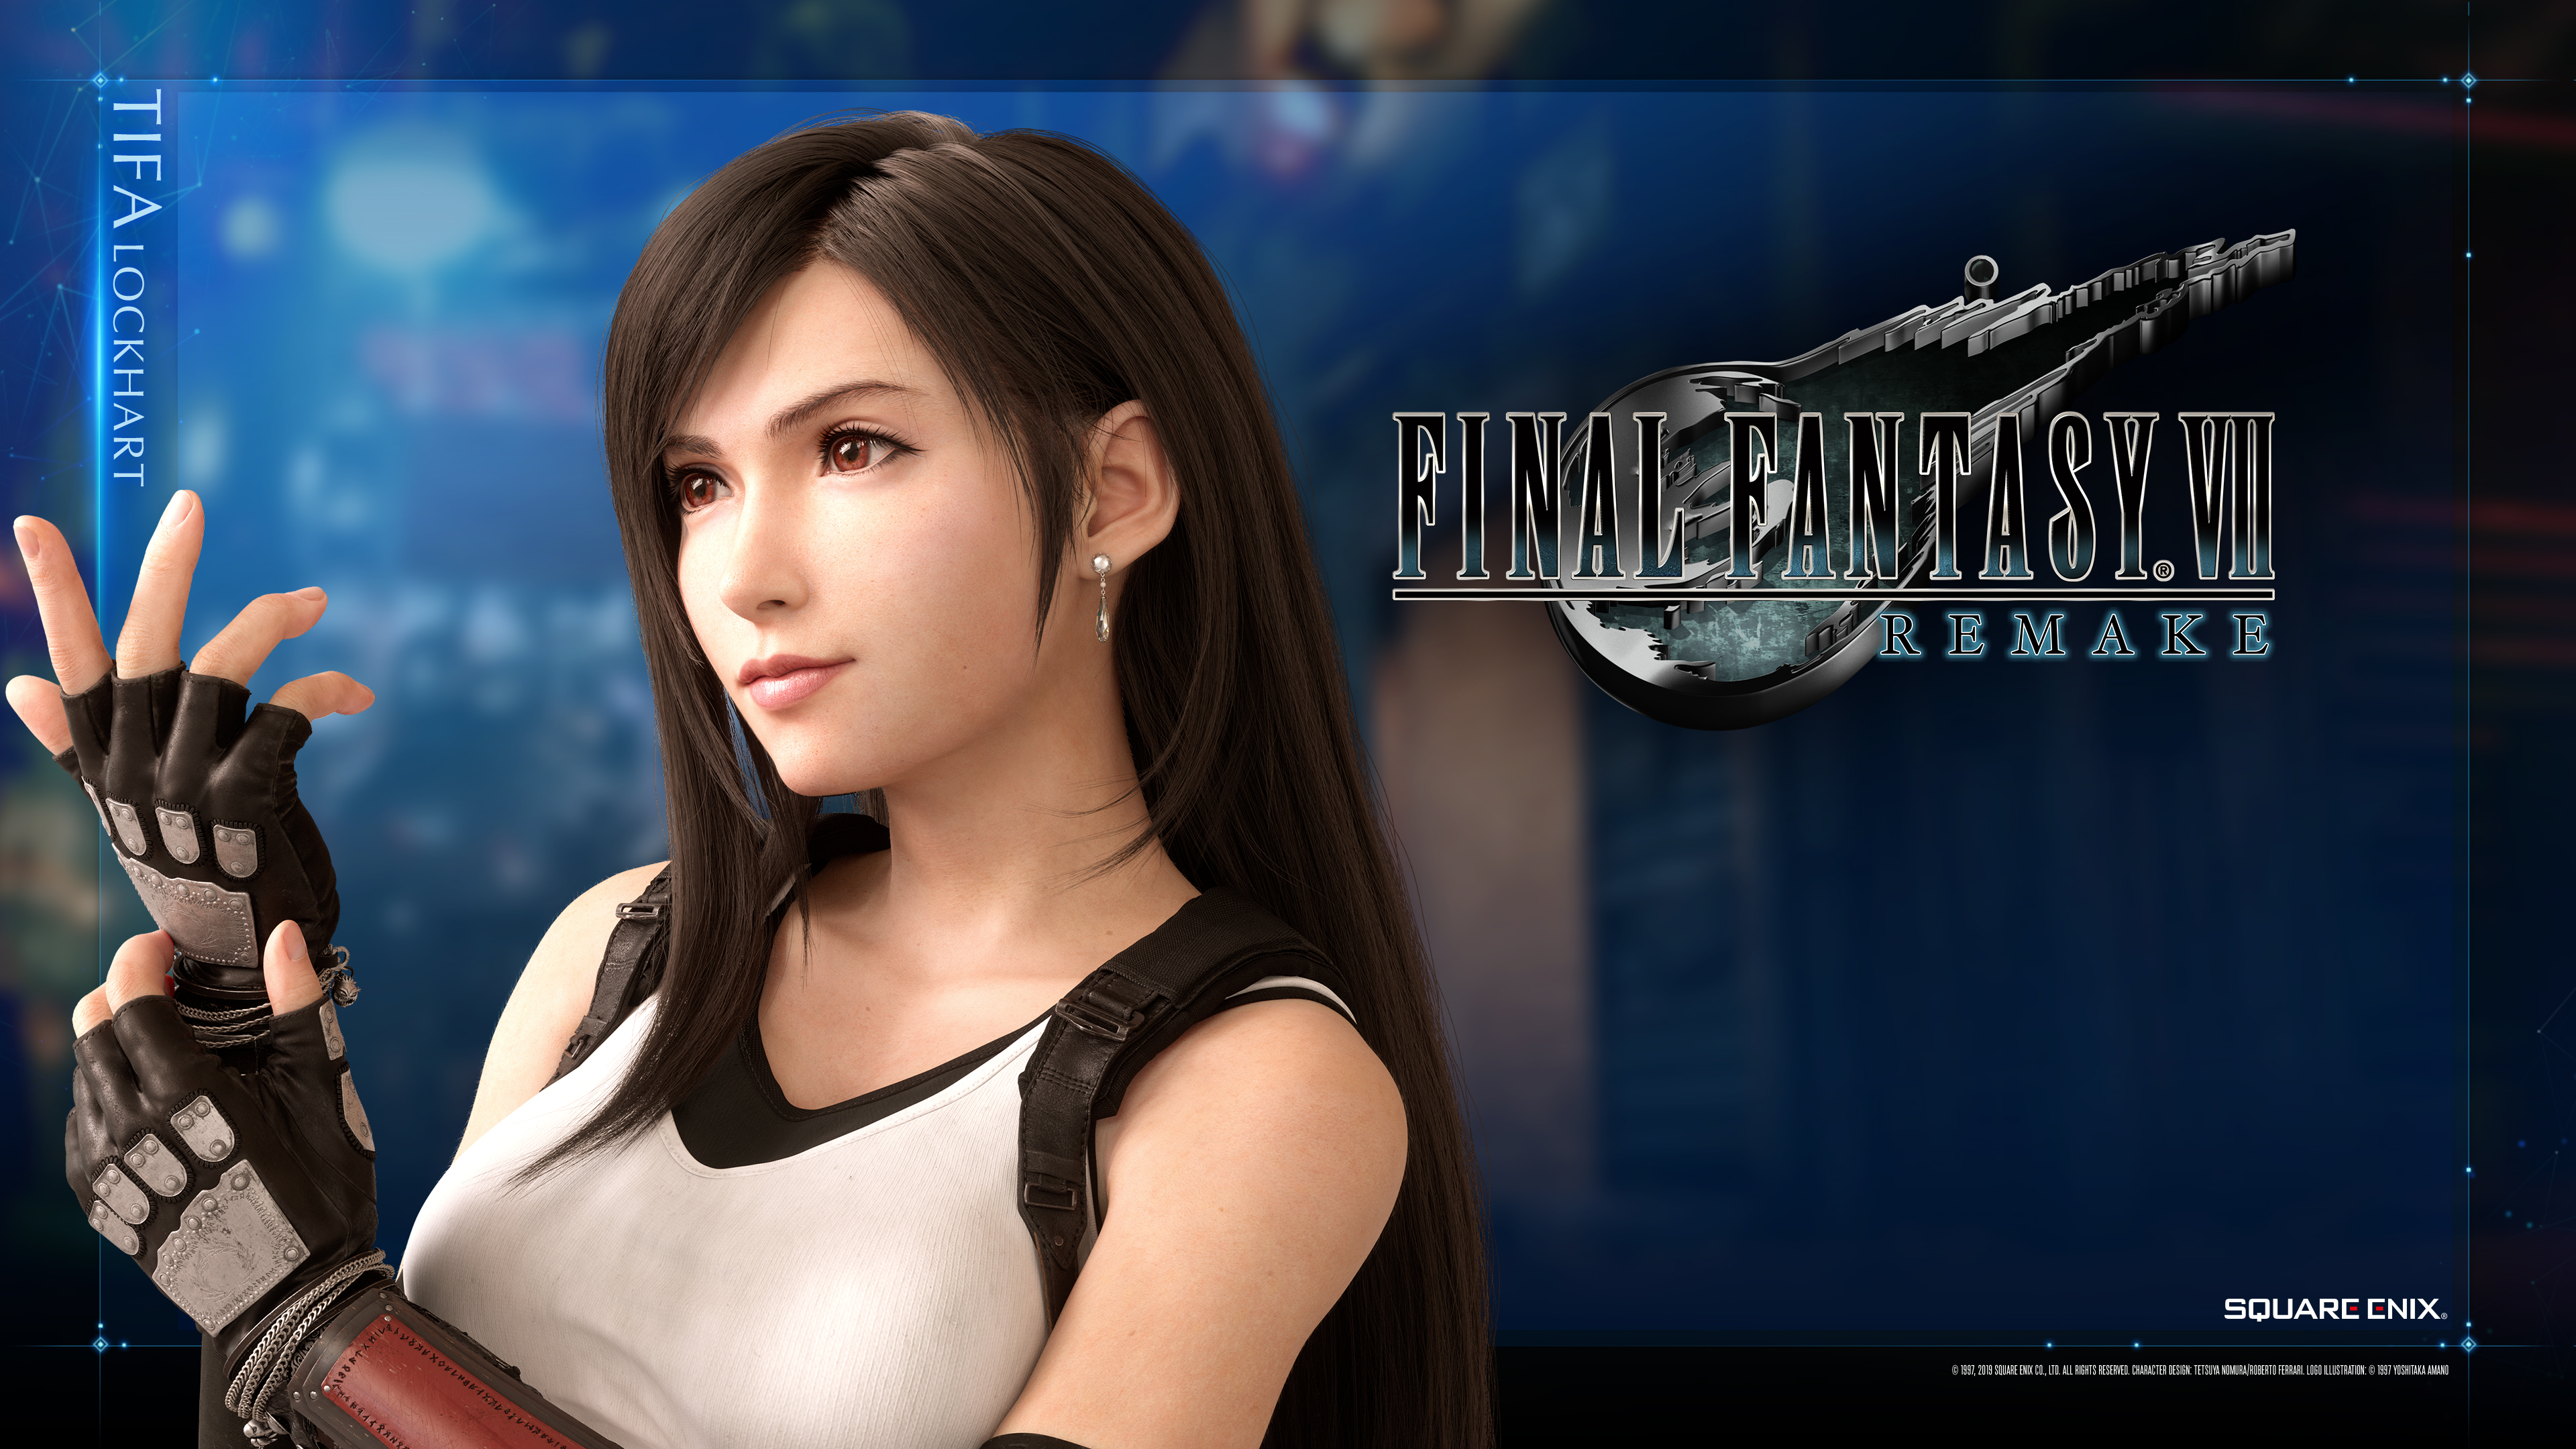 Final Fantasy Vii Remake